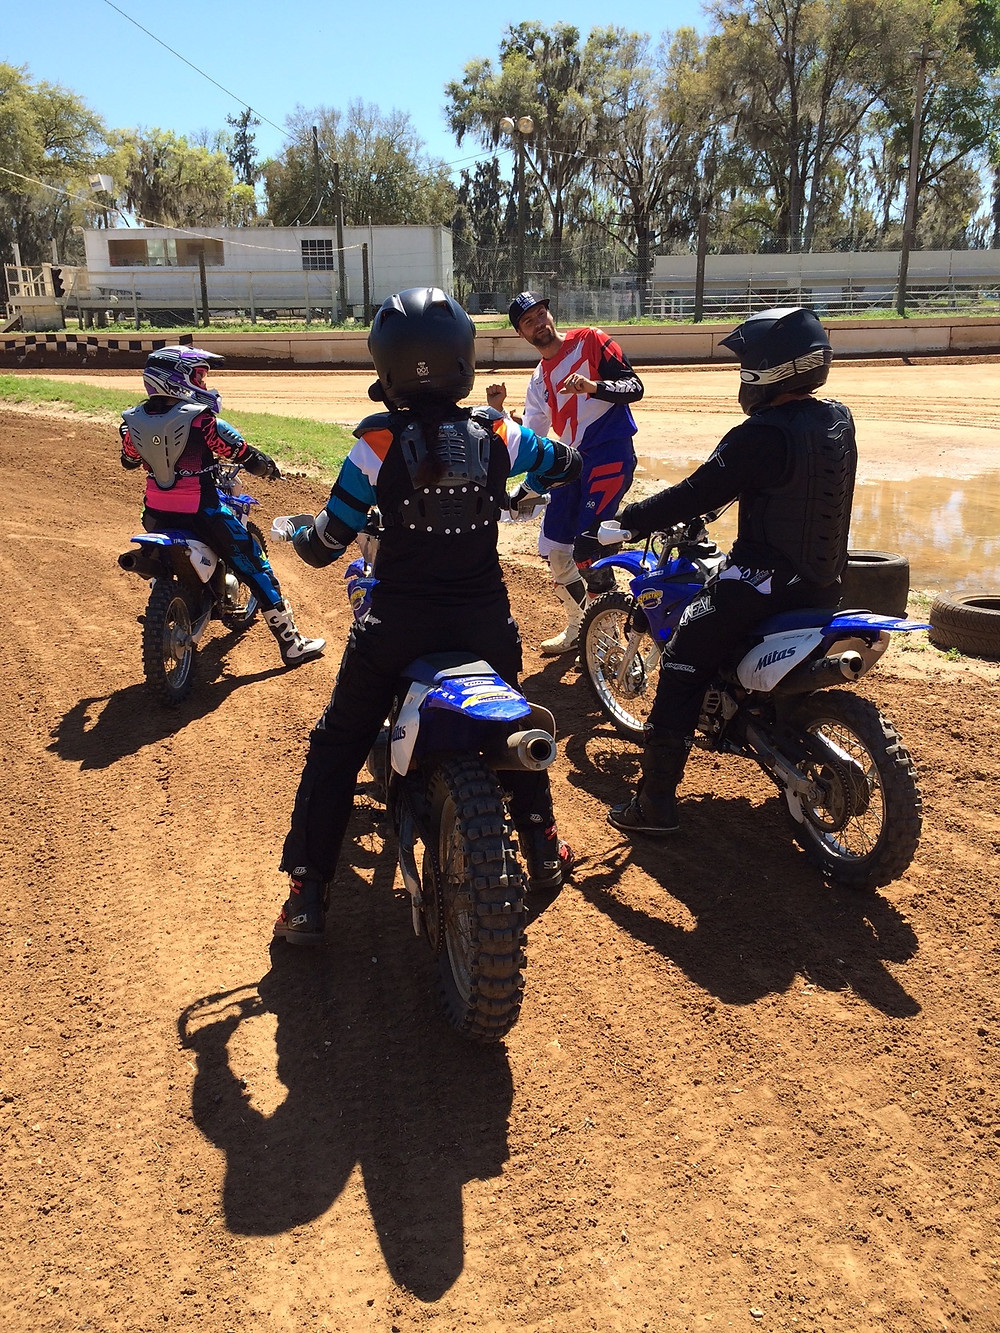 dirtbikes, motorcycles, Flat track, motorcycle training